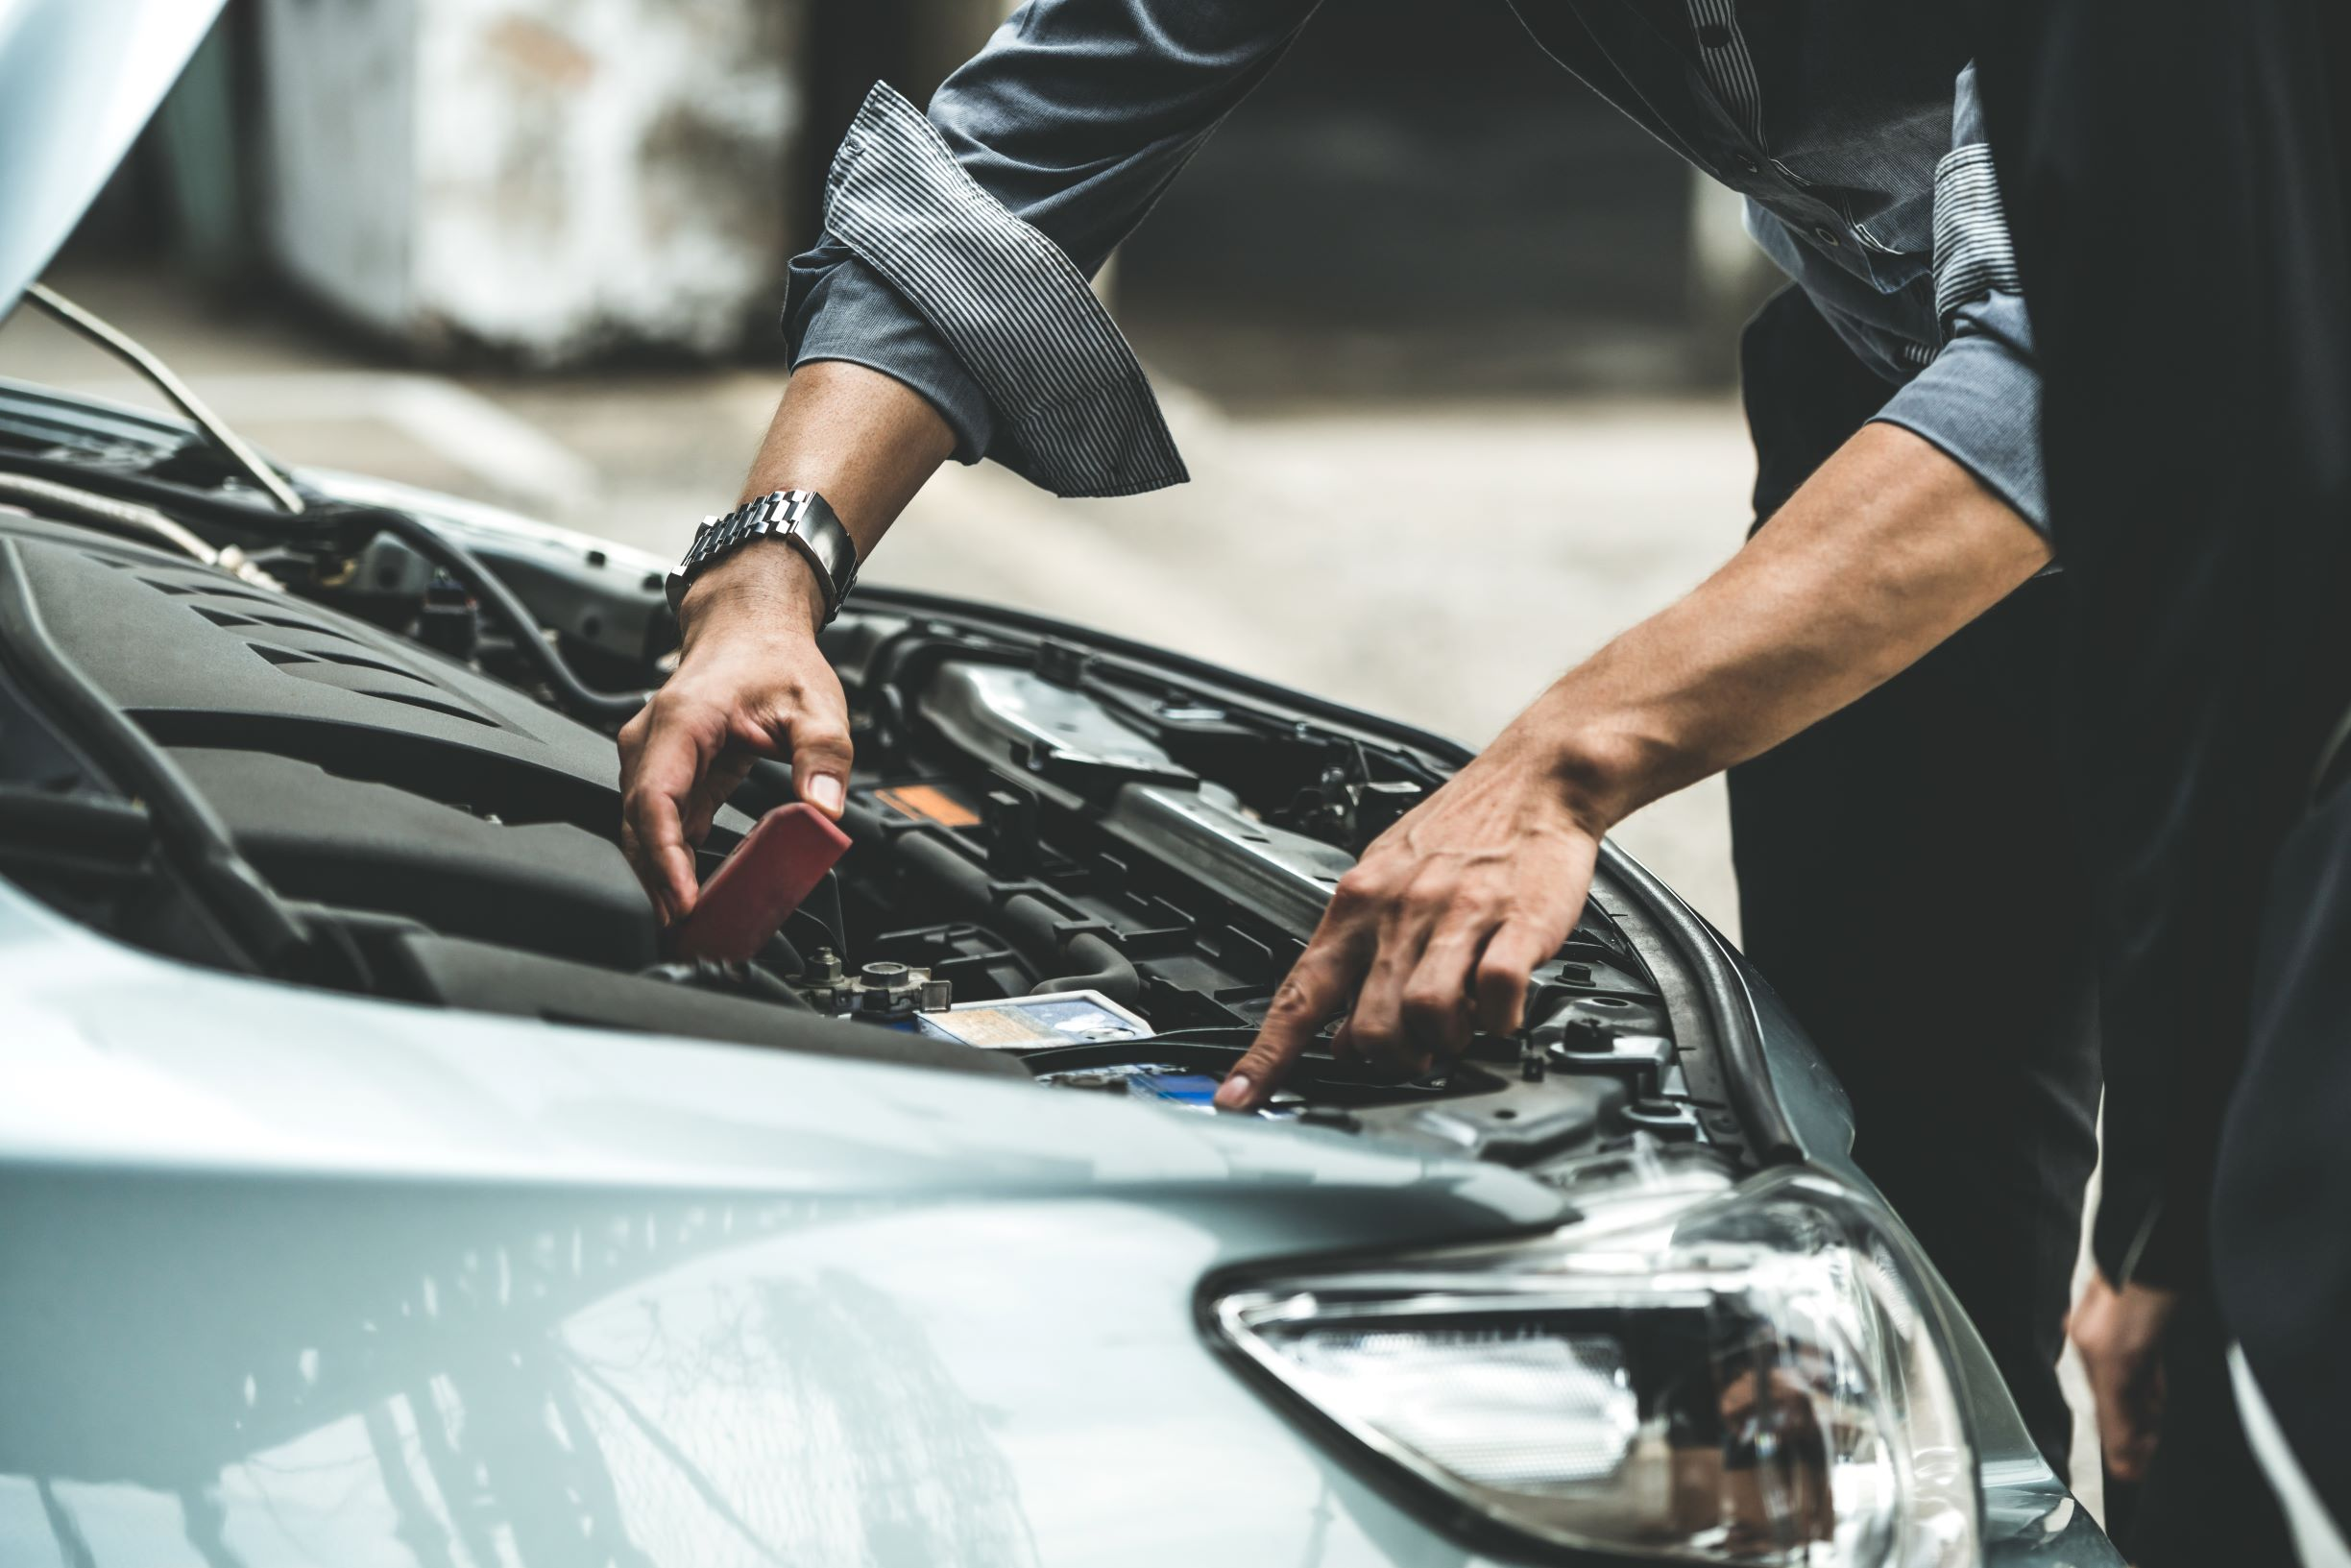 Ways to Inspect a Used Car When Buying It